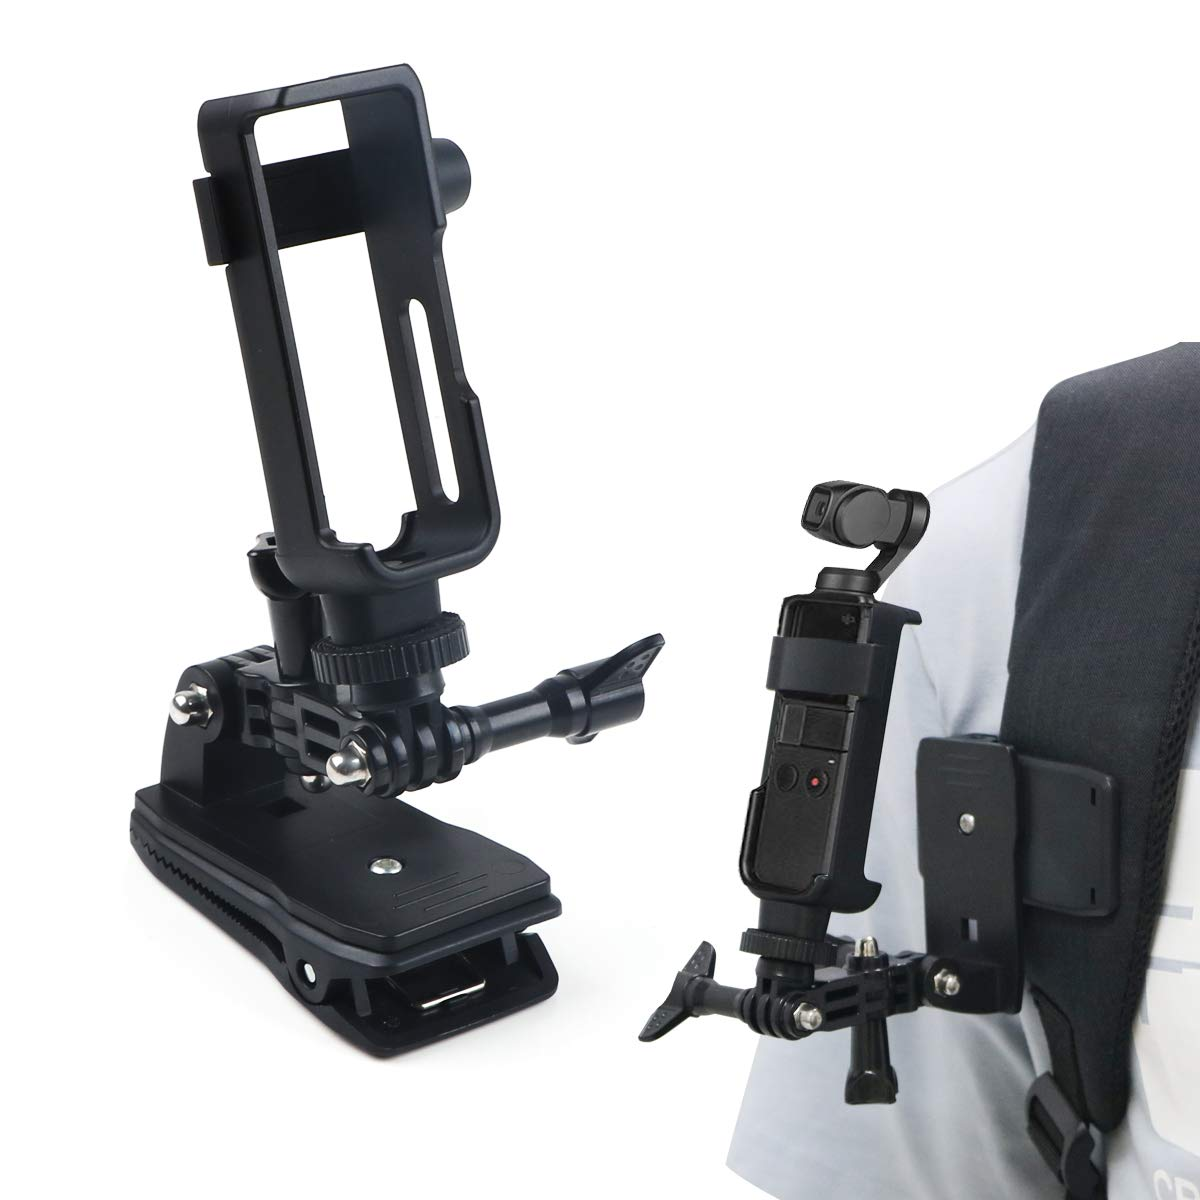 Backpack Clip FPVERA Backpack Clip Mount Tripod for DJI OSMO Pocket Accessories Kit Adjustment arm Backpack Clip Protective Mount